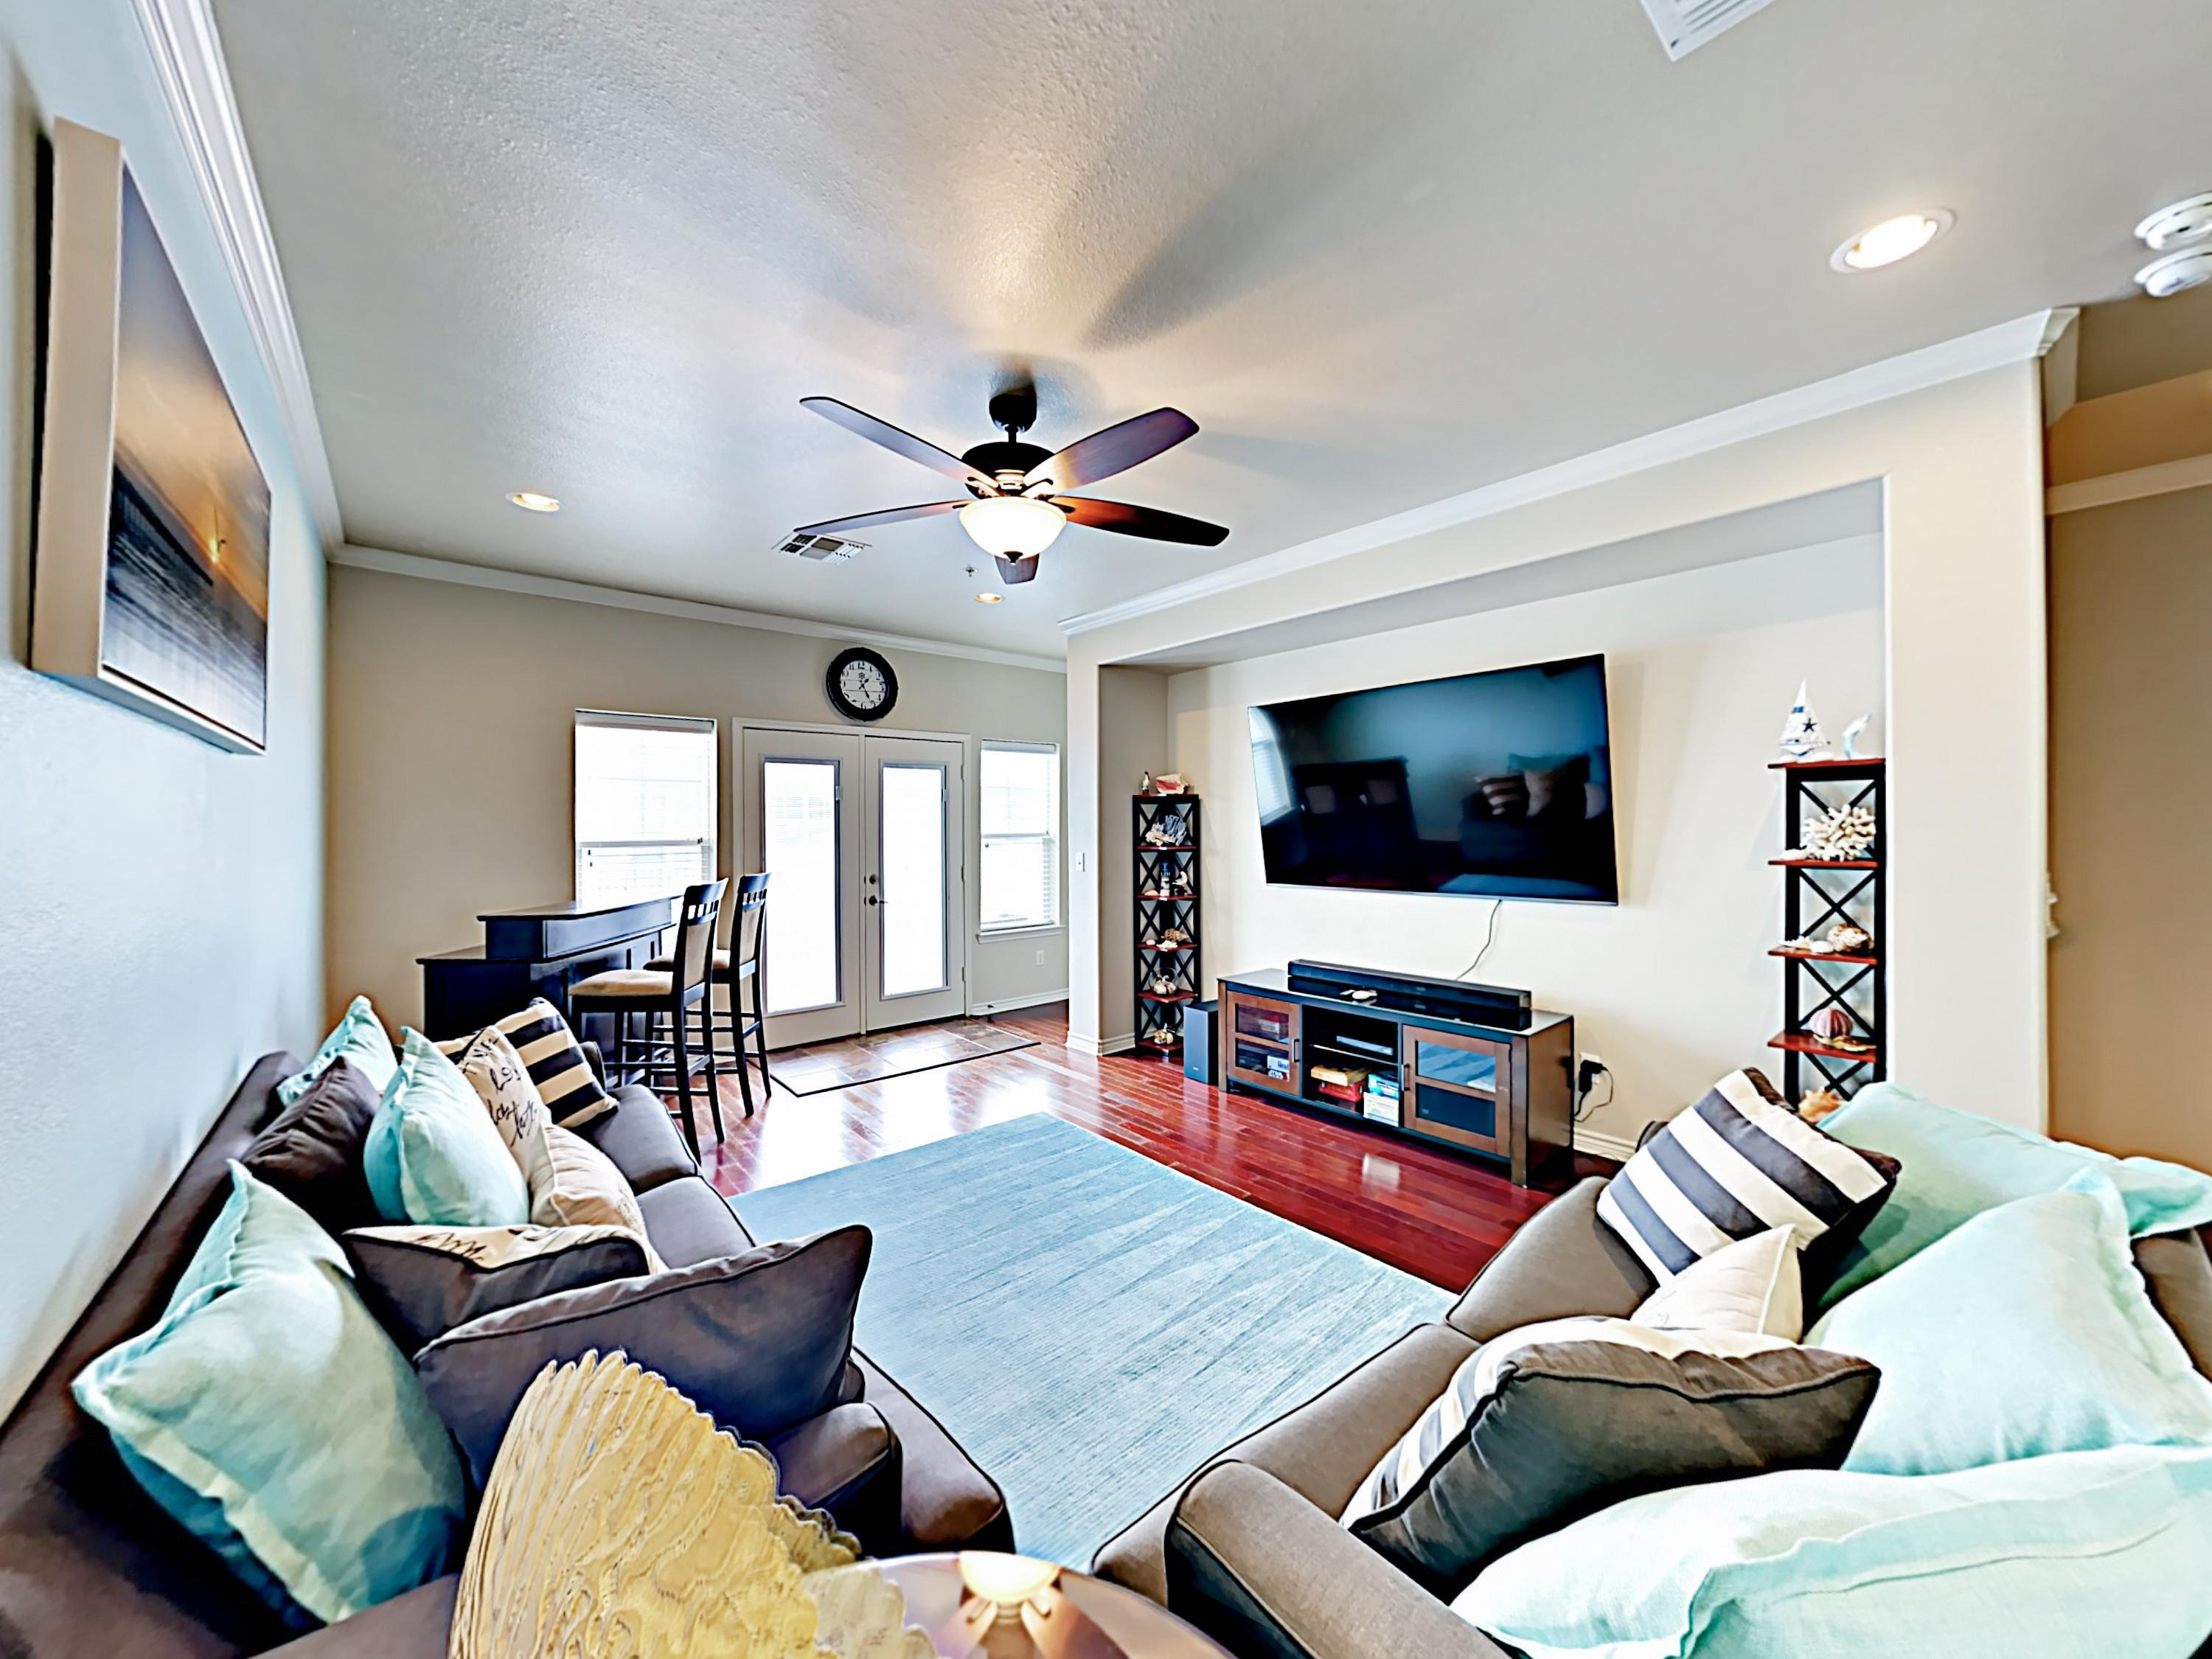 Welcome to Port Aransas! This condo is professionally managed by TurnKey Vacation Rentals.